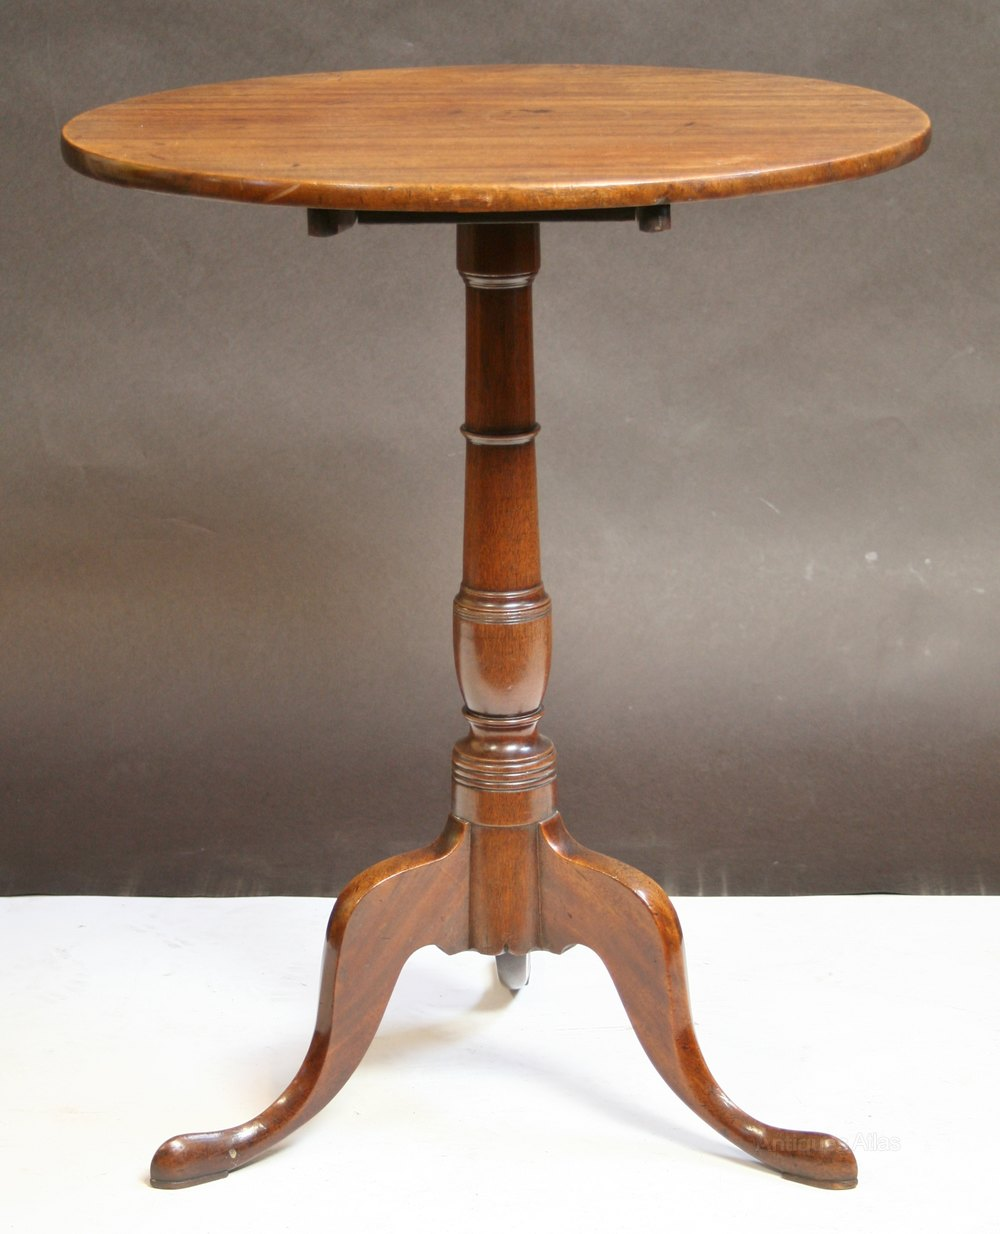 george iii mahogany circular tilt top tripod table antiques atlas. Black Bedroom Furniture Sets. Home Design Ideas